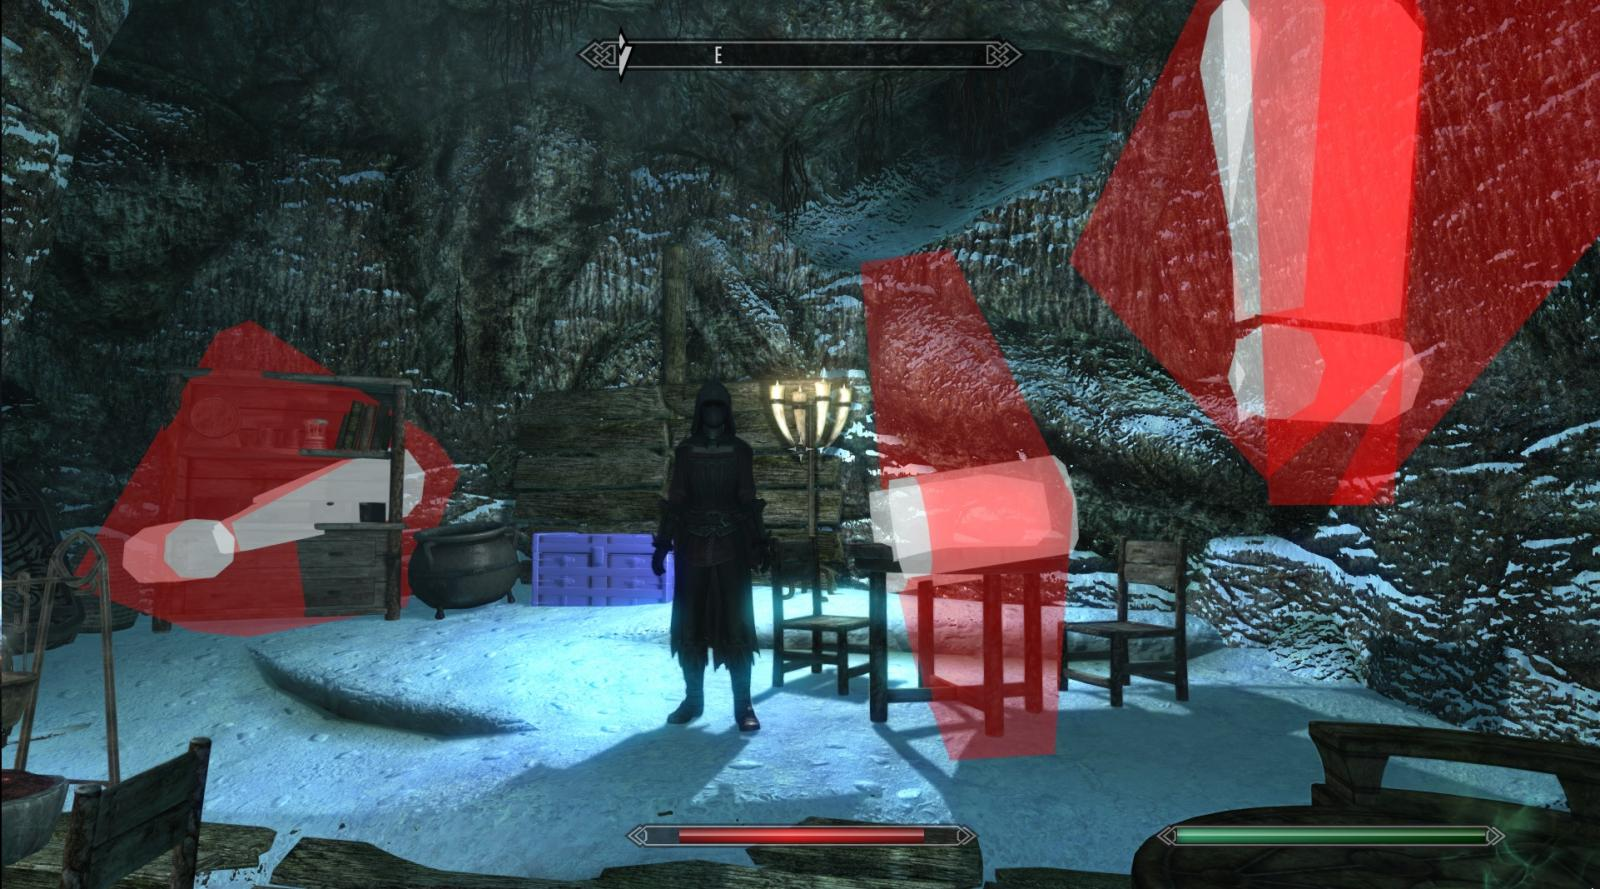 Skyrim Mod Related Glitch - Troubleshooting - Linus Tech Tips